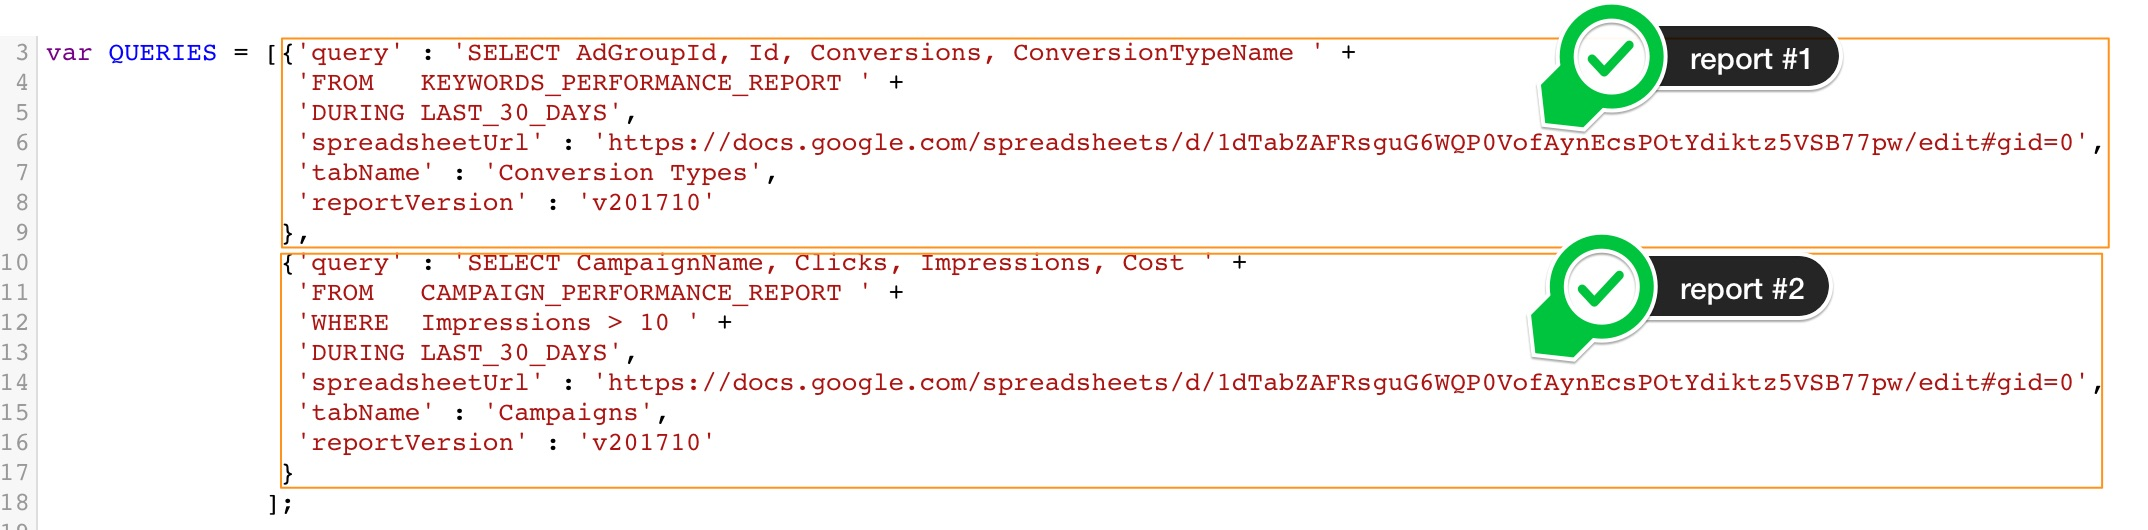 Queries to Put AdWords Reports in Spreadsheet